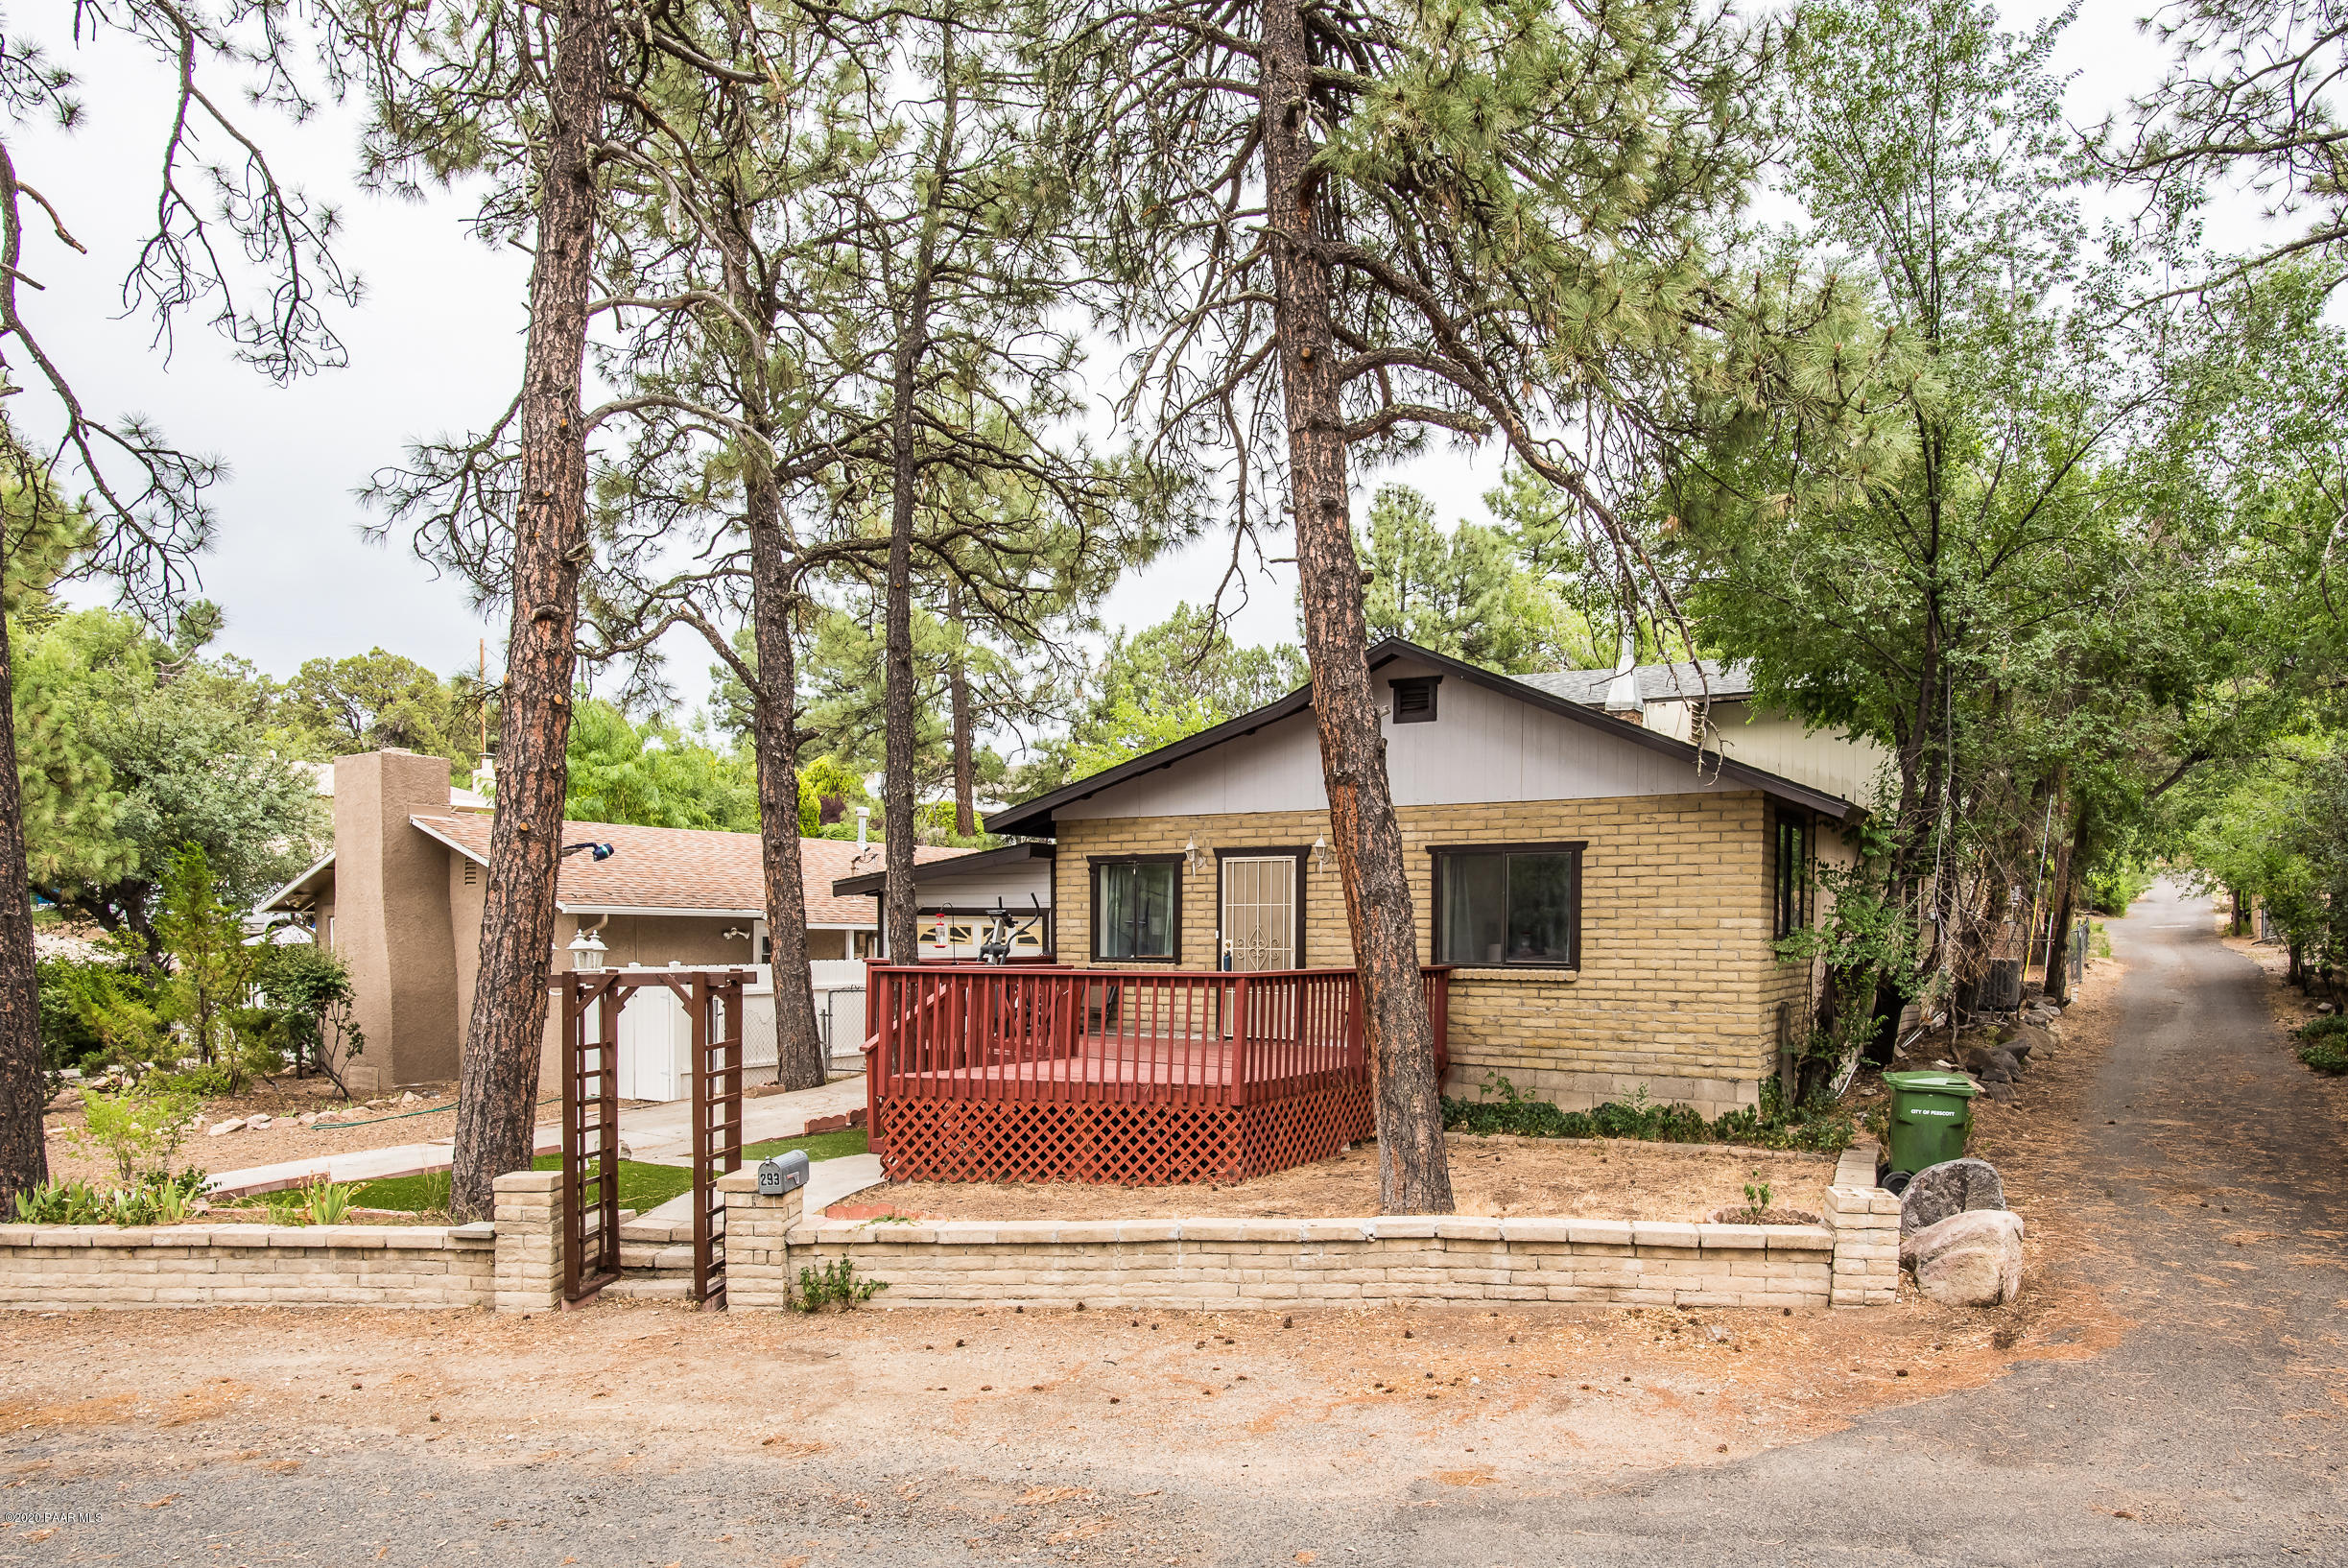 293 S Willow Street, Prescott Az 86303